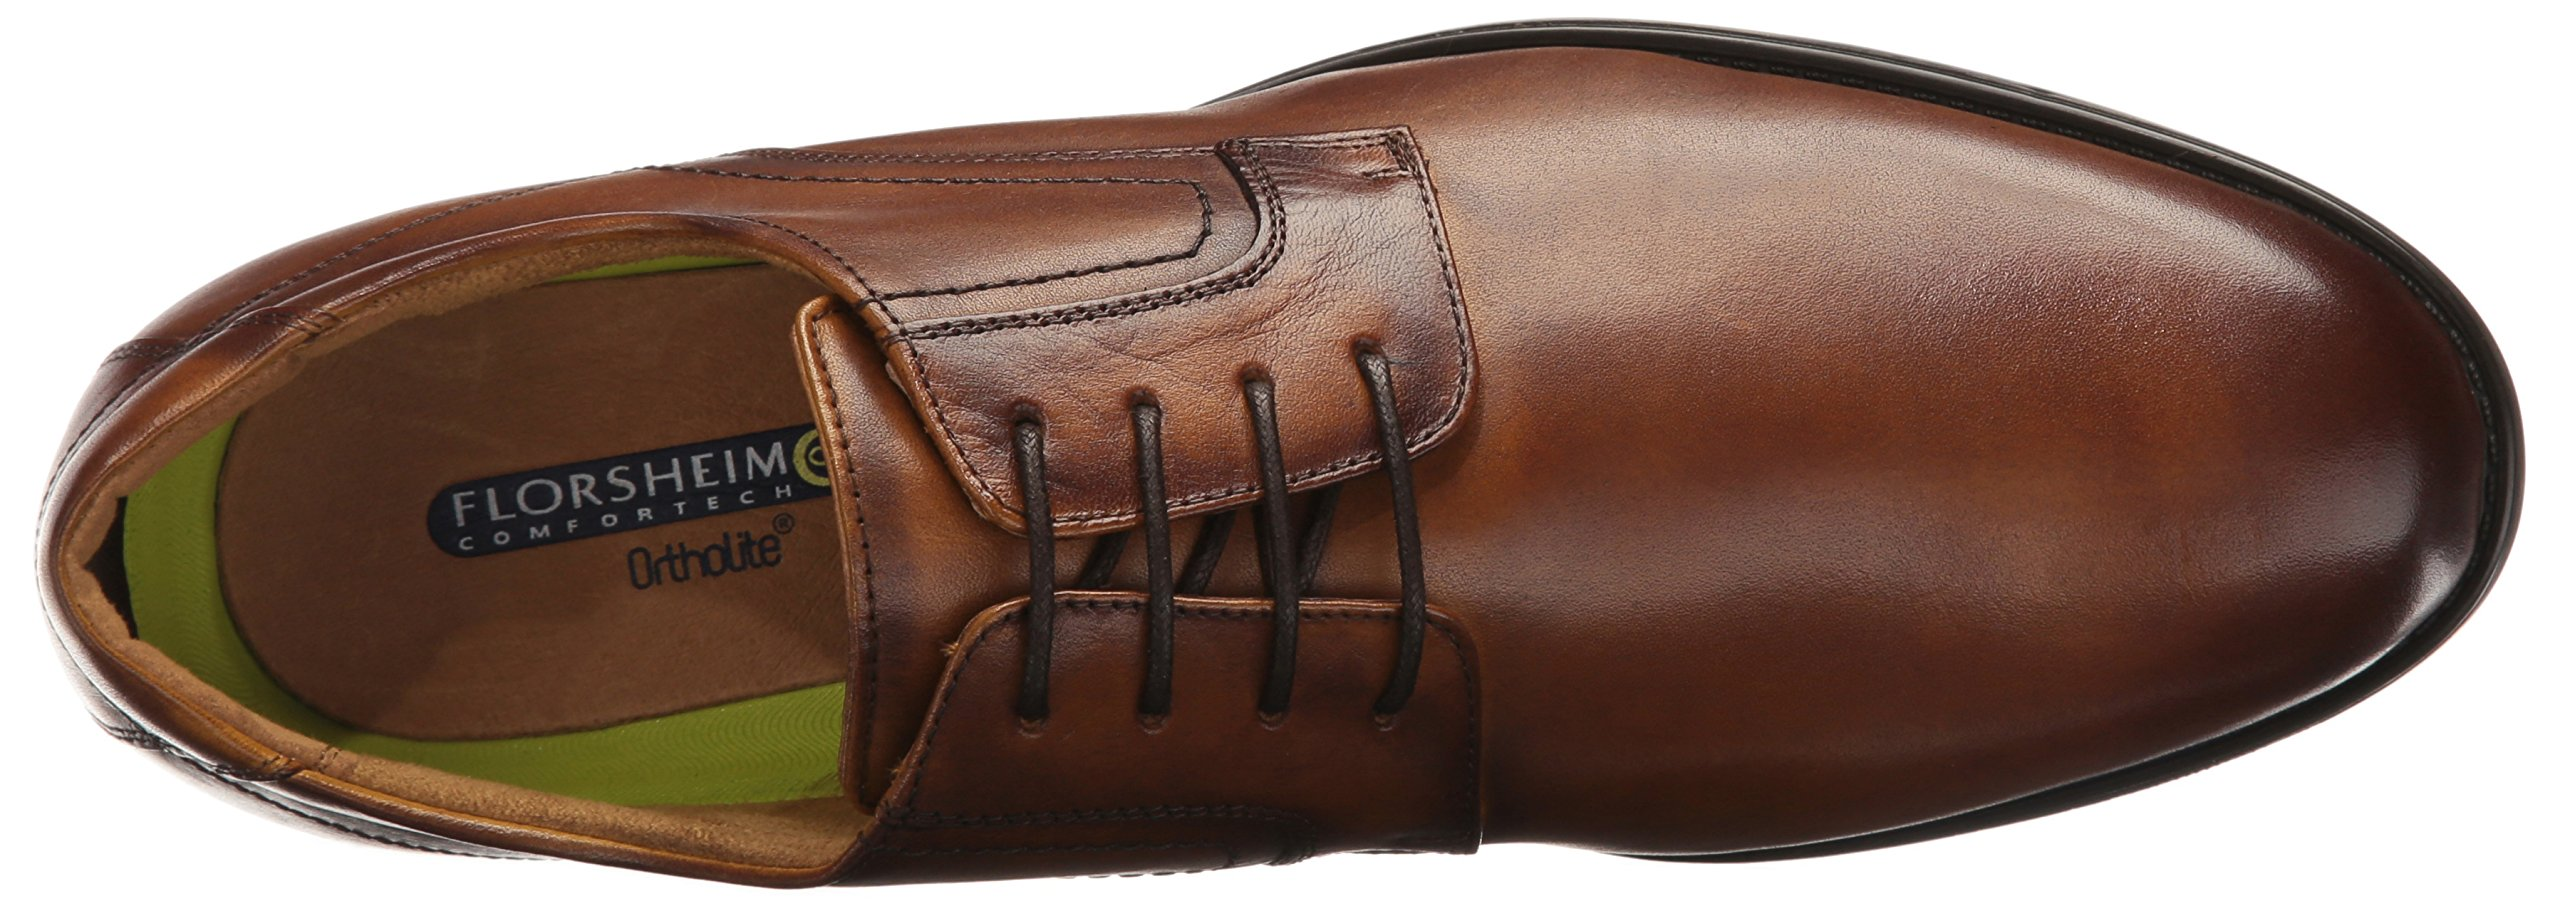 Florsheim Men's Medfield Plain Toe Oxford Dress Shoe, Cognac, 8 D US by Florsheim (Image #8)